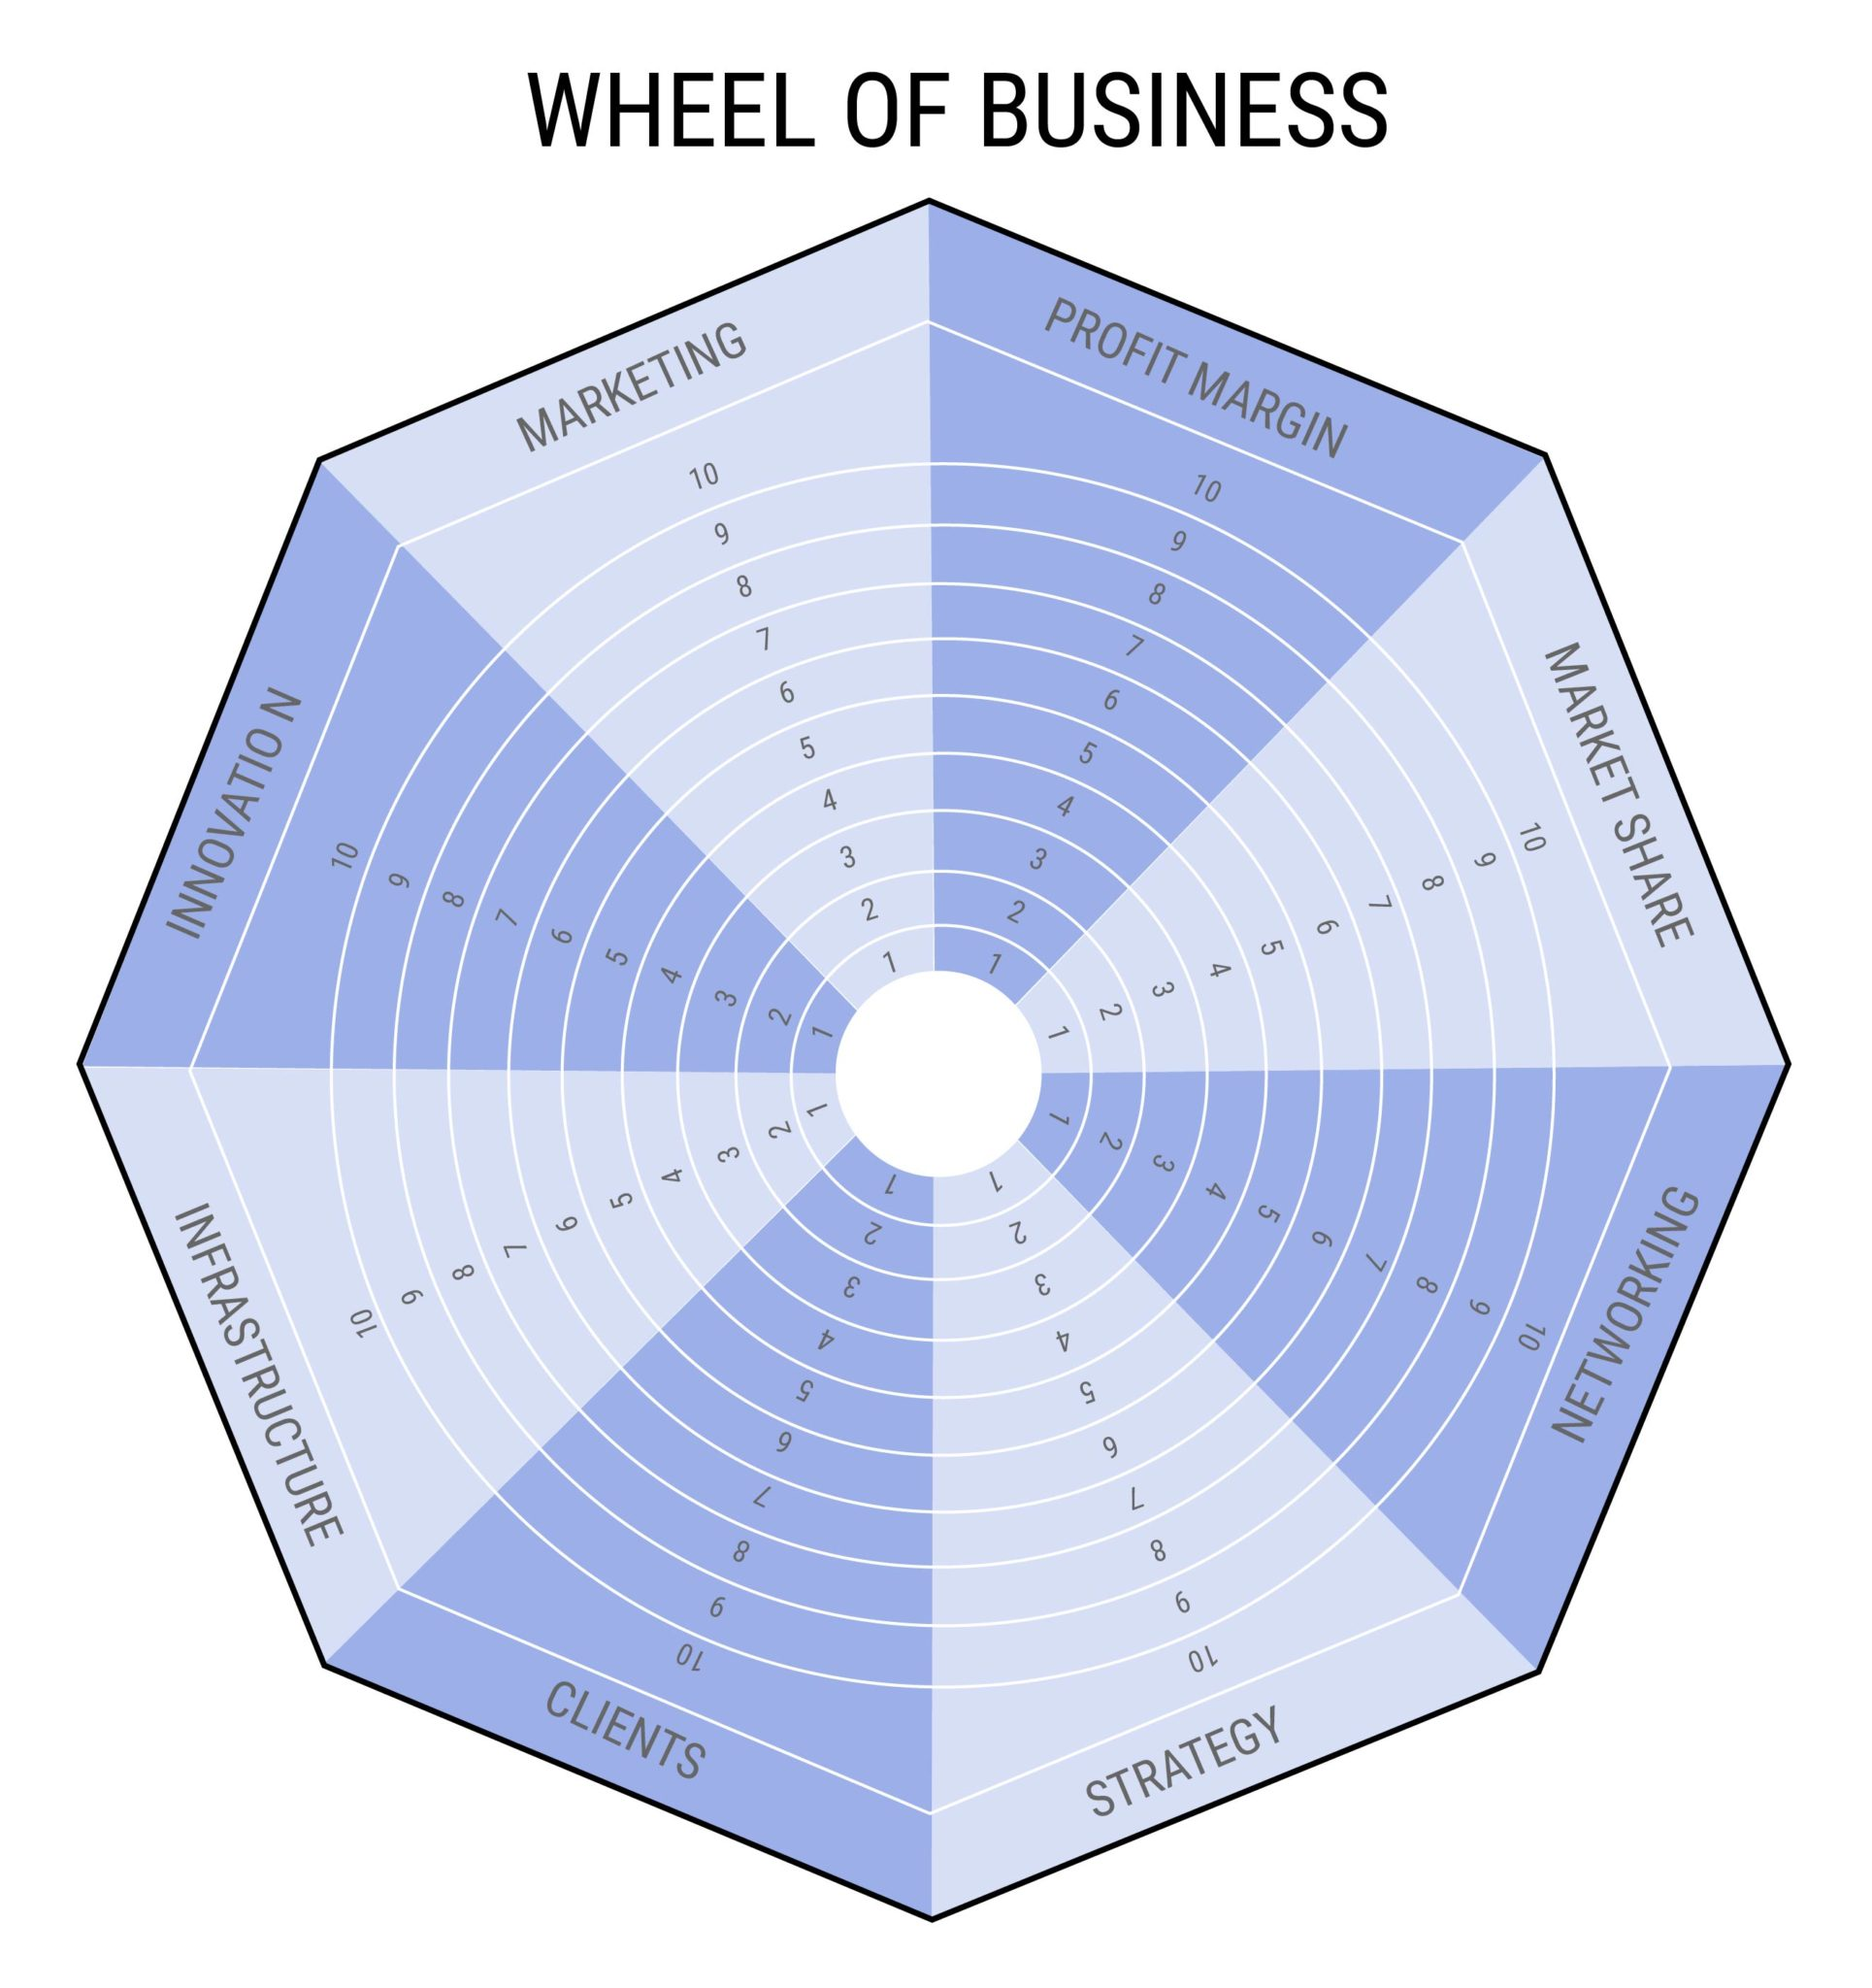 WHEEL OF BUSINESS